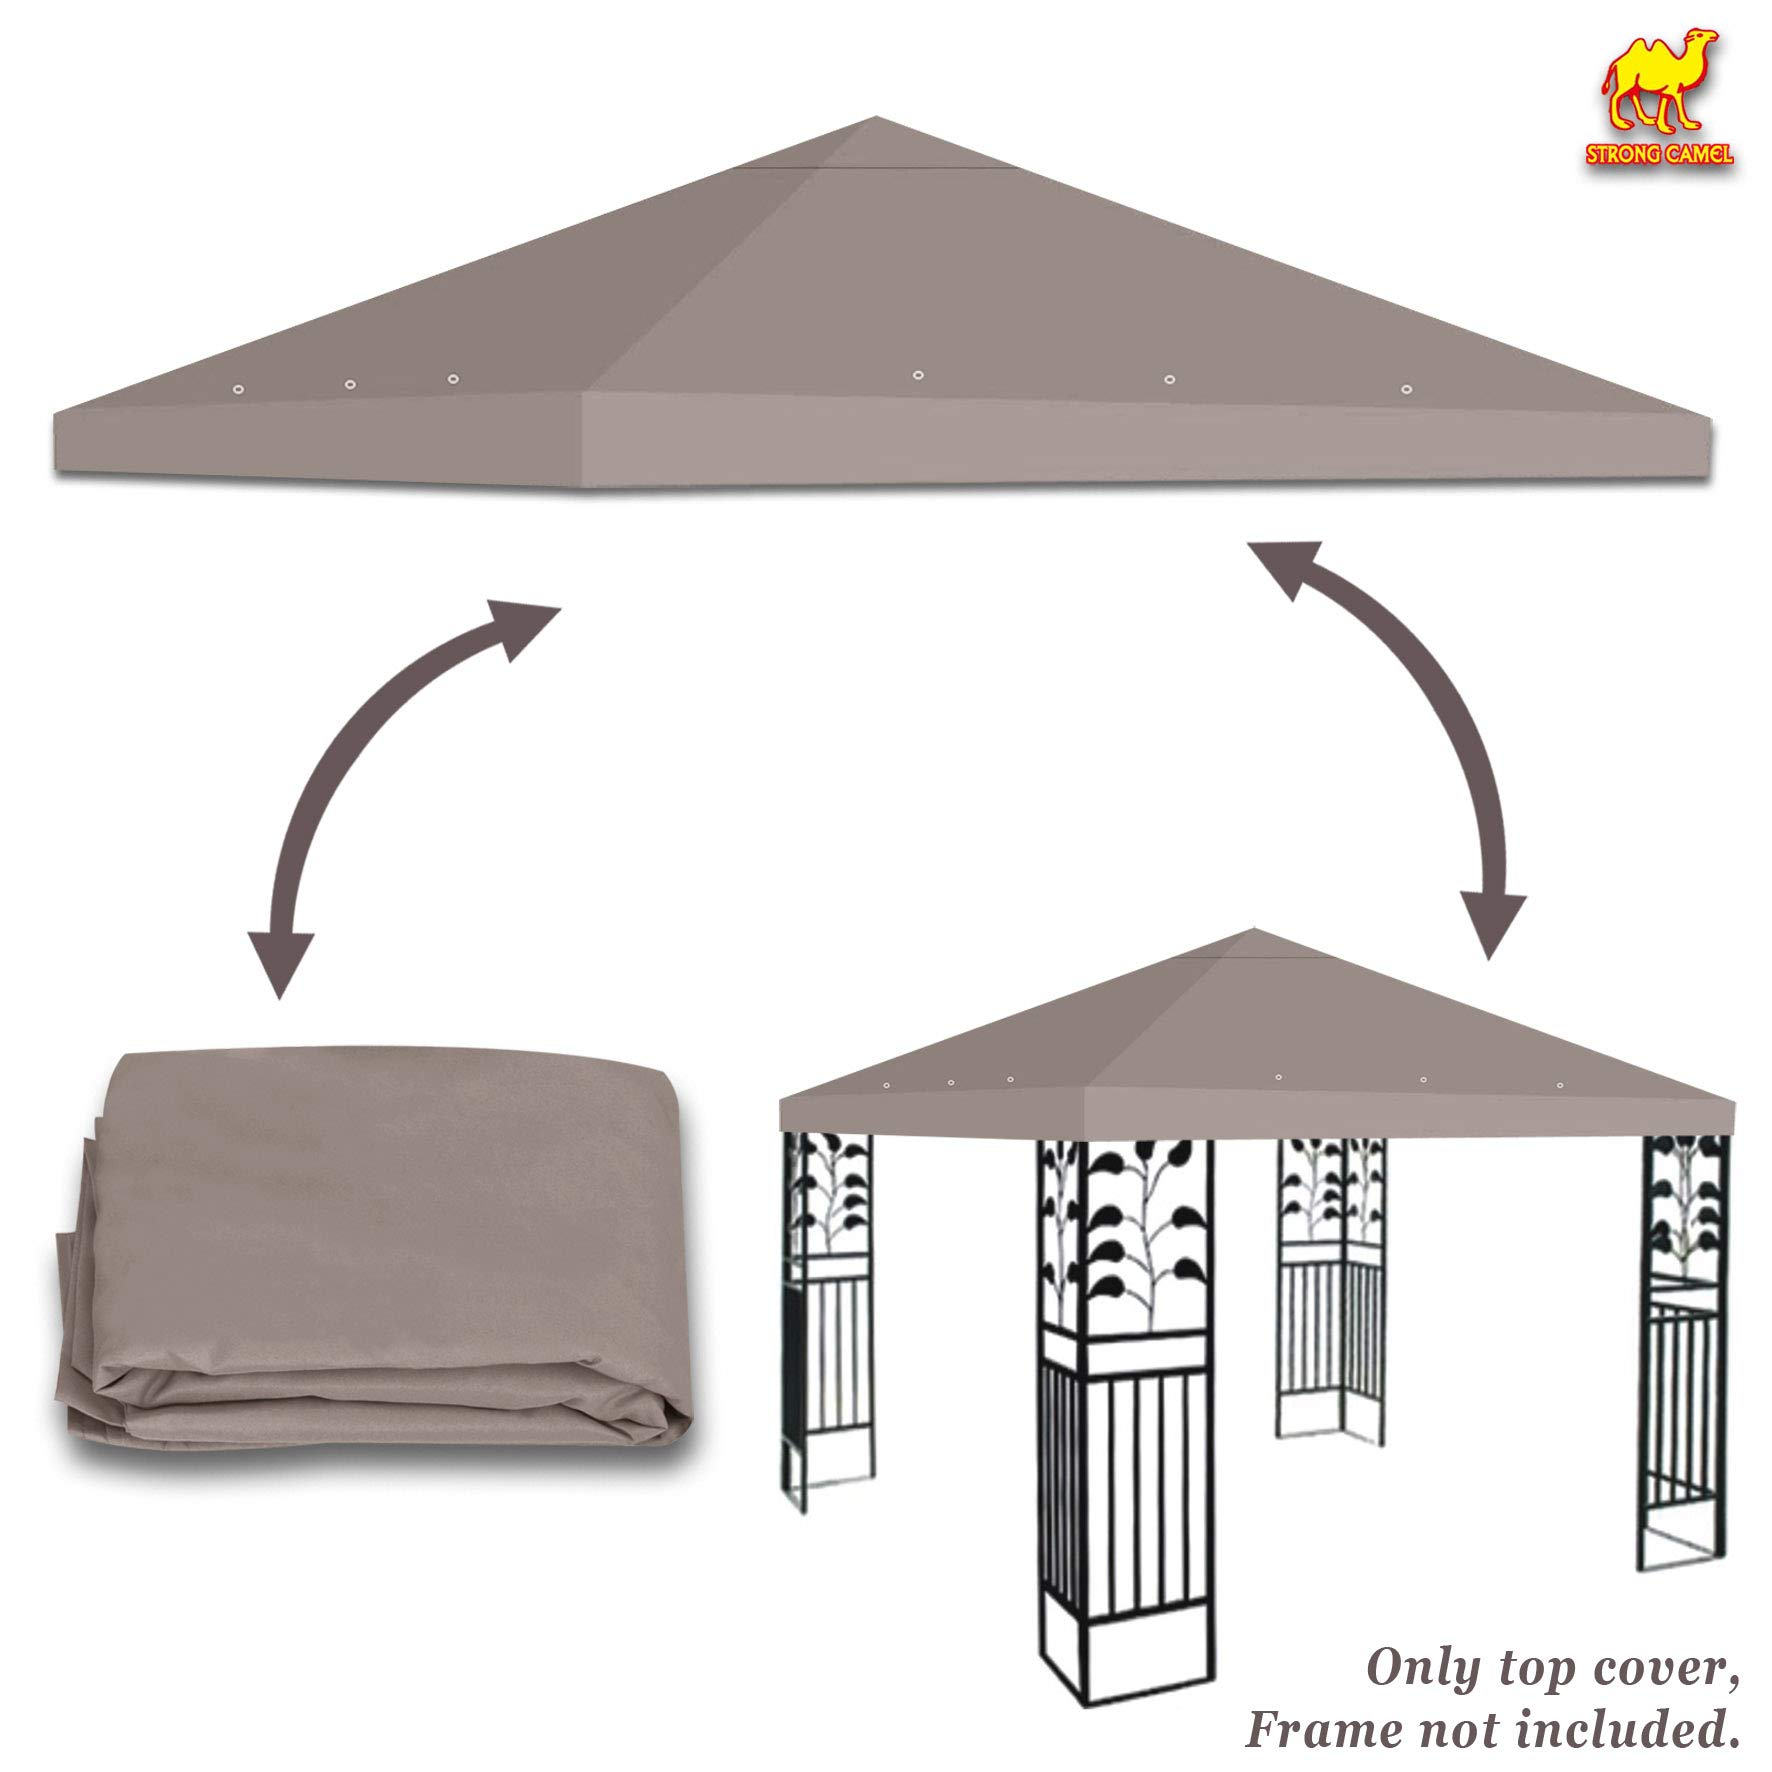 Stromg Camel 10' x 10' Canopy Top Cover Patio Pavilion Replacement Gazebo Top (Taupe)